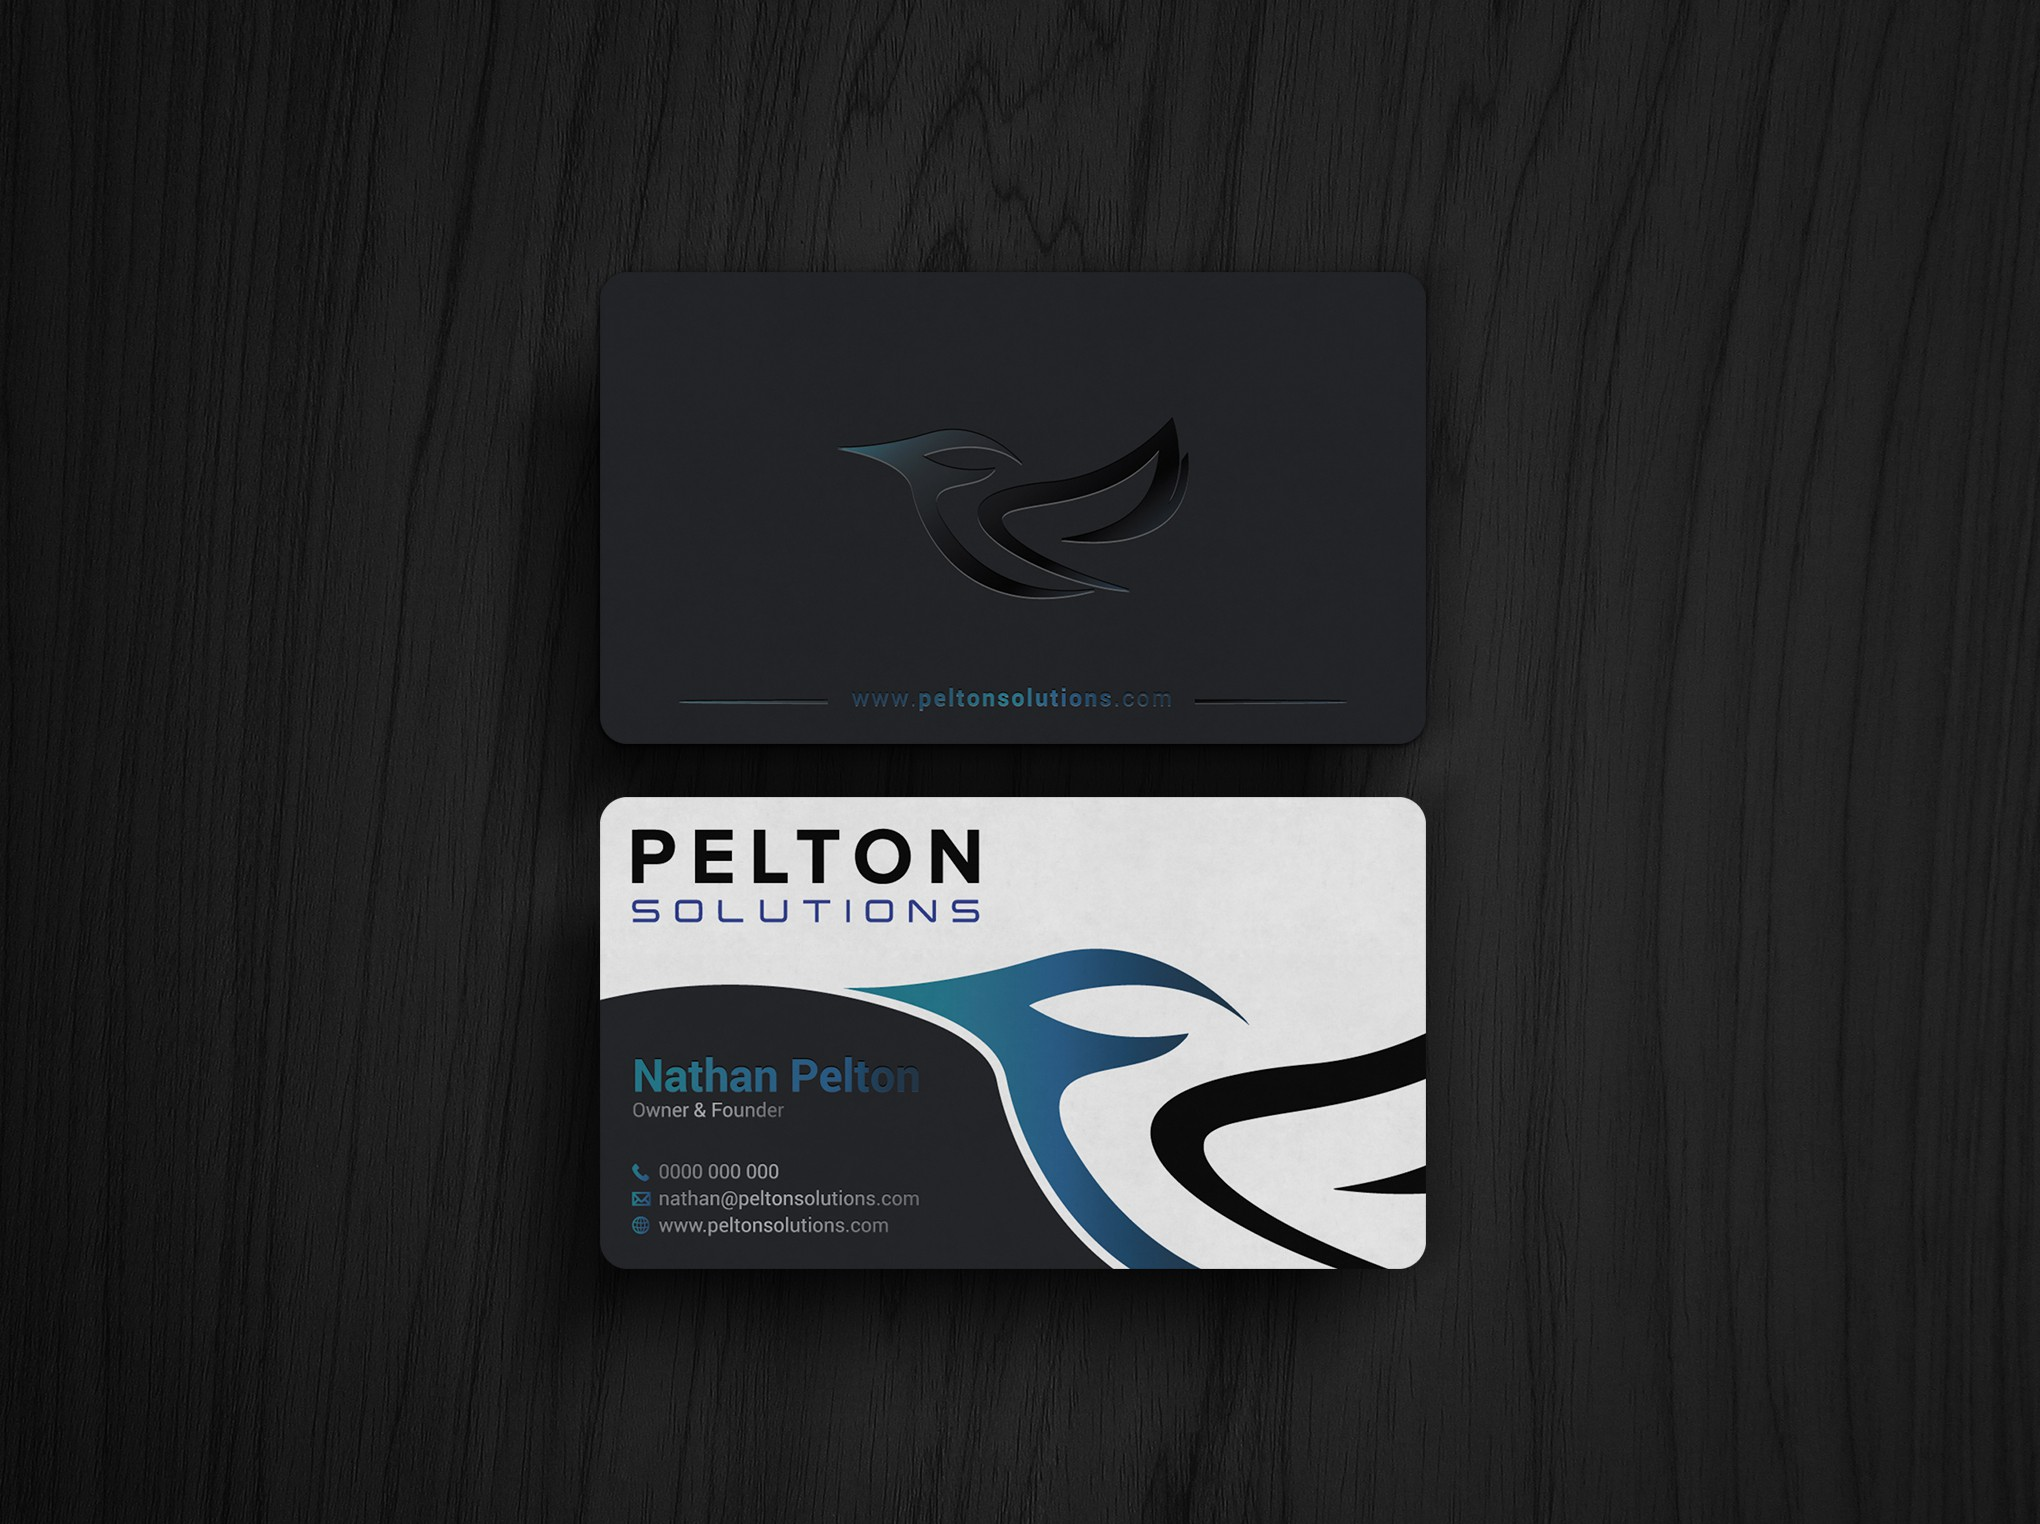 Business Card Design for New Web Application Company